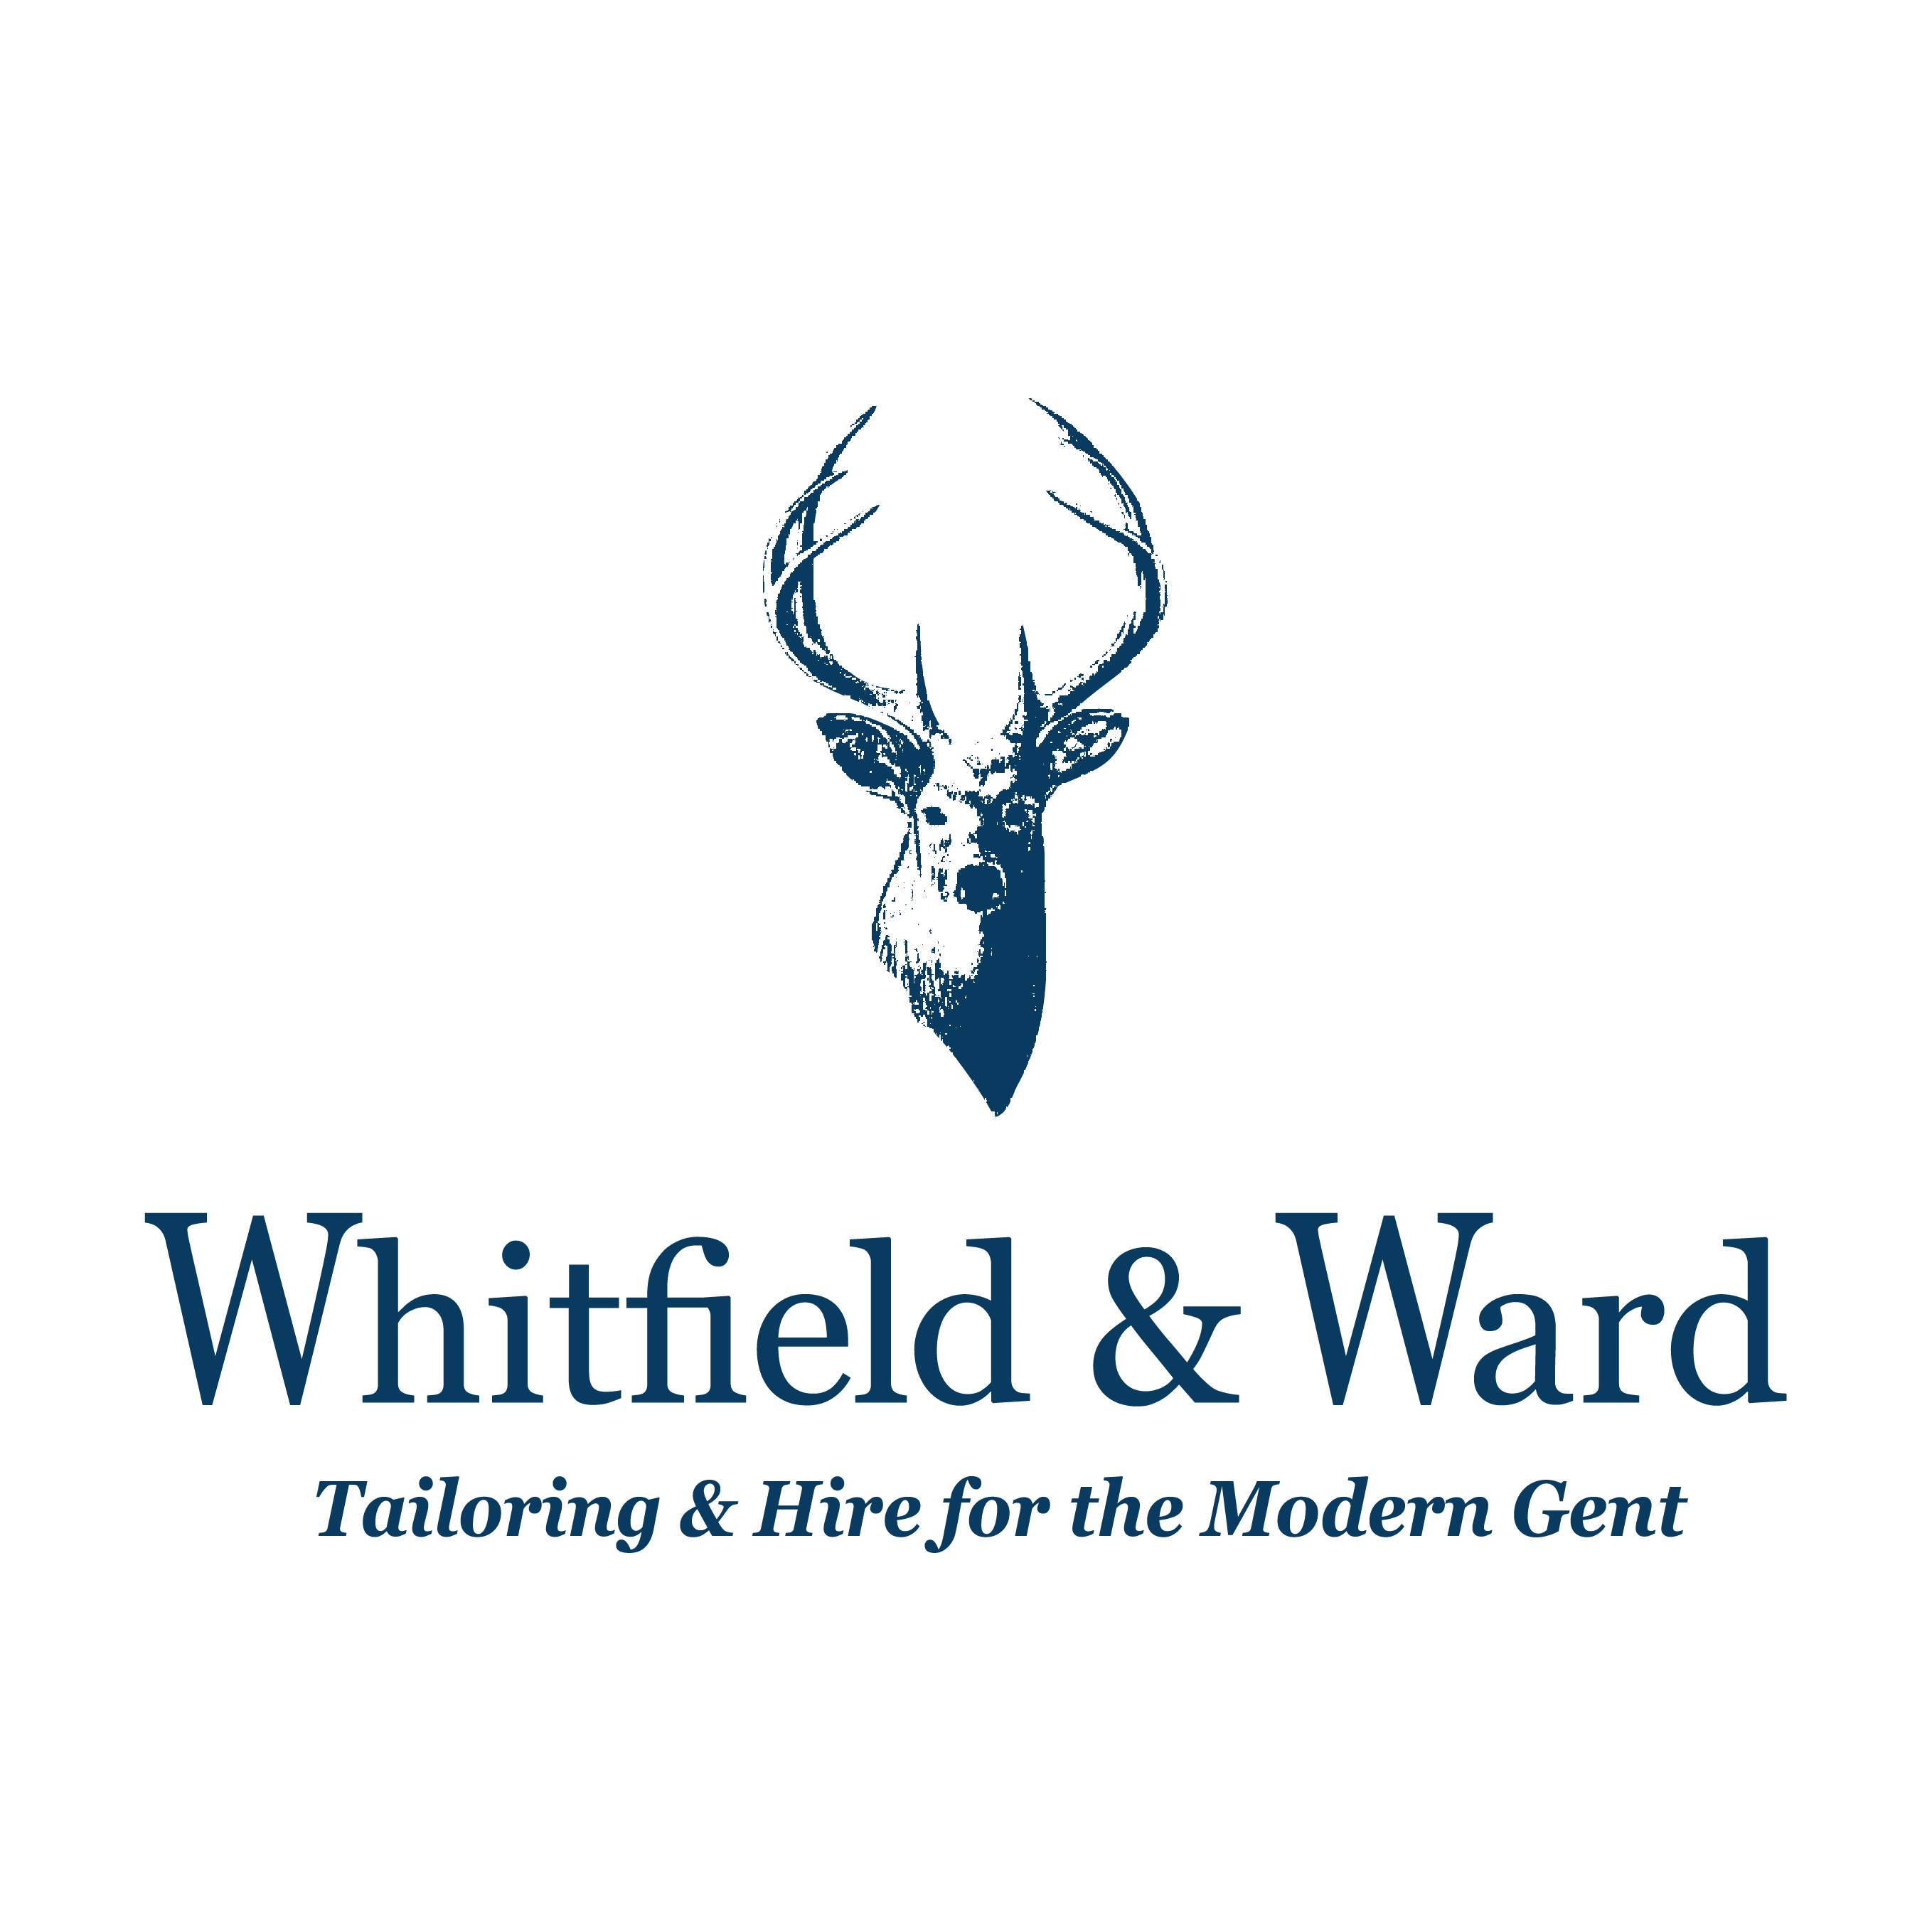 Whitfield & Ward